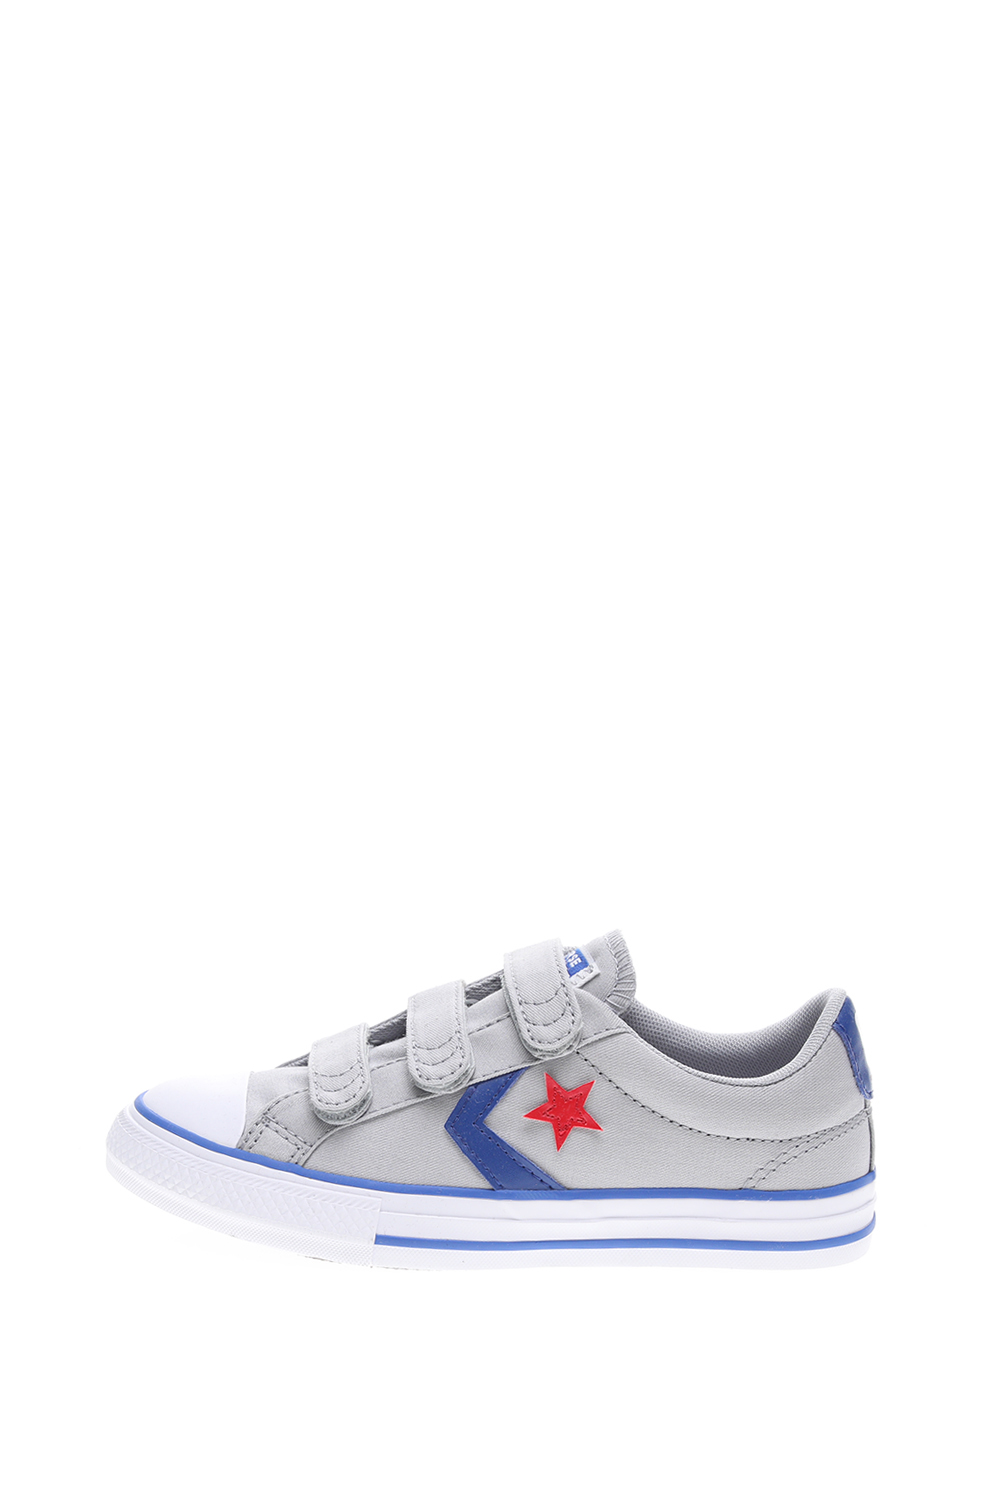 CONVERSE – Παιδικά sneakers Star Player 3V Ox CONVERSE γκρι